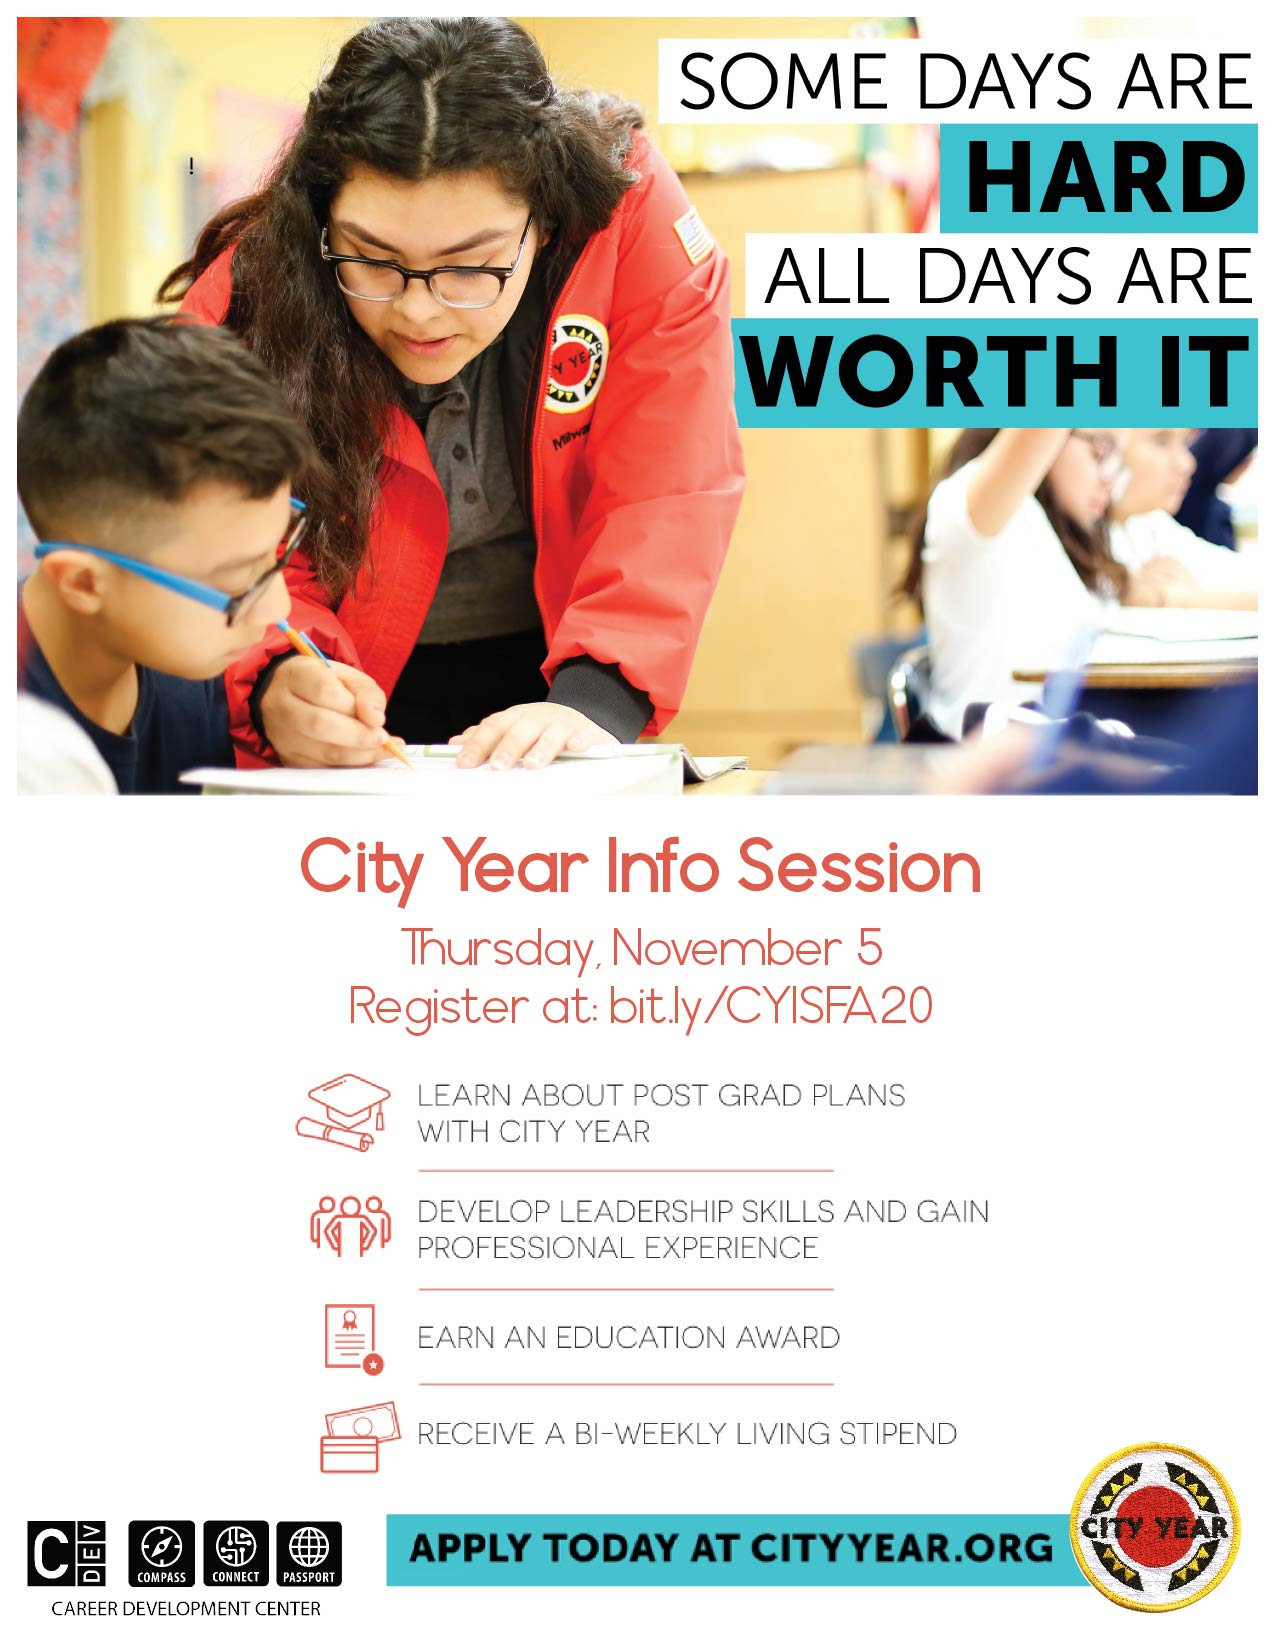 City Year flyer